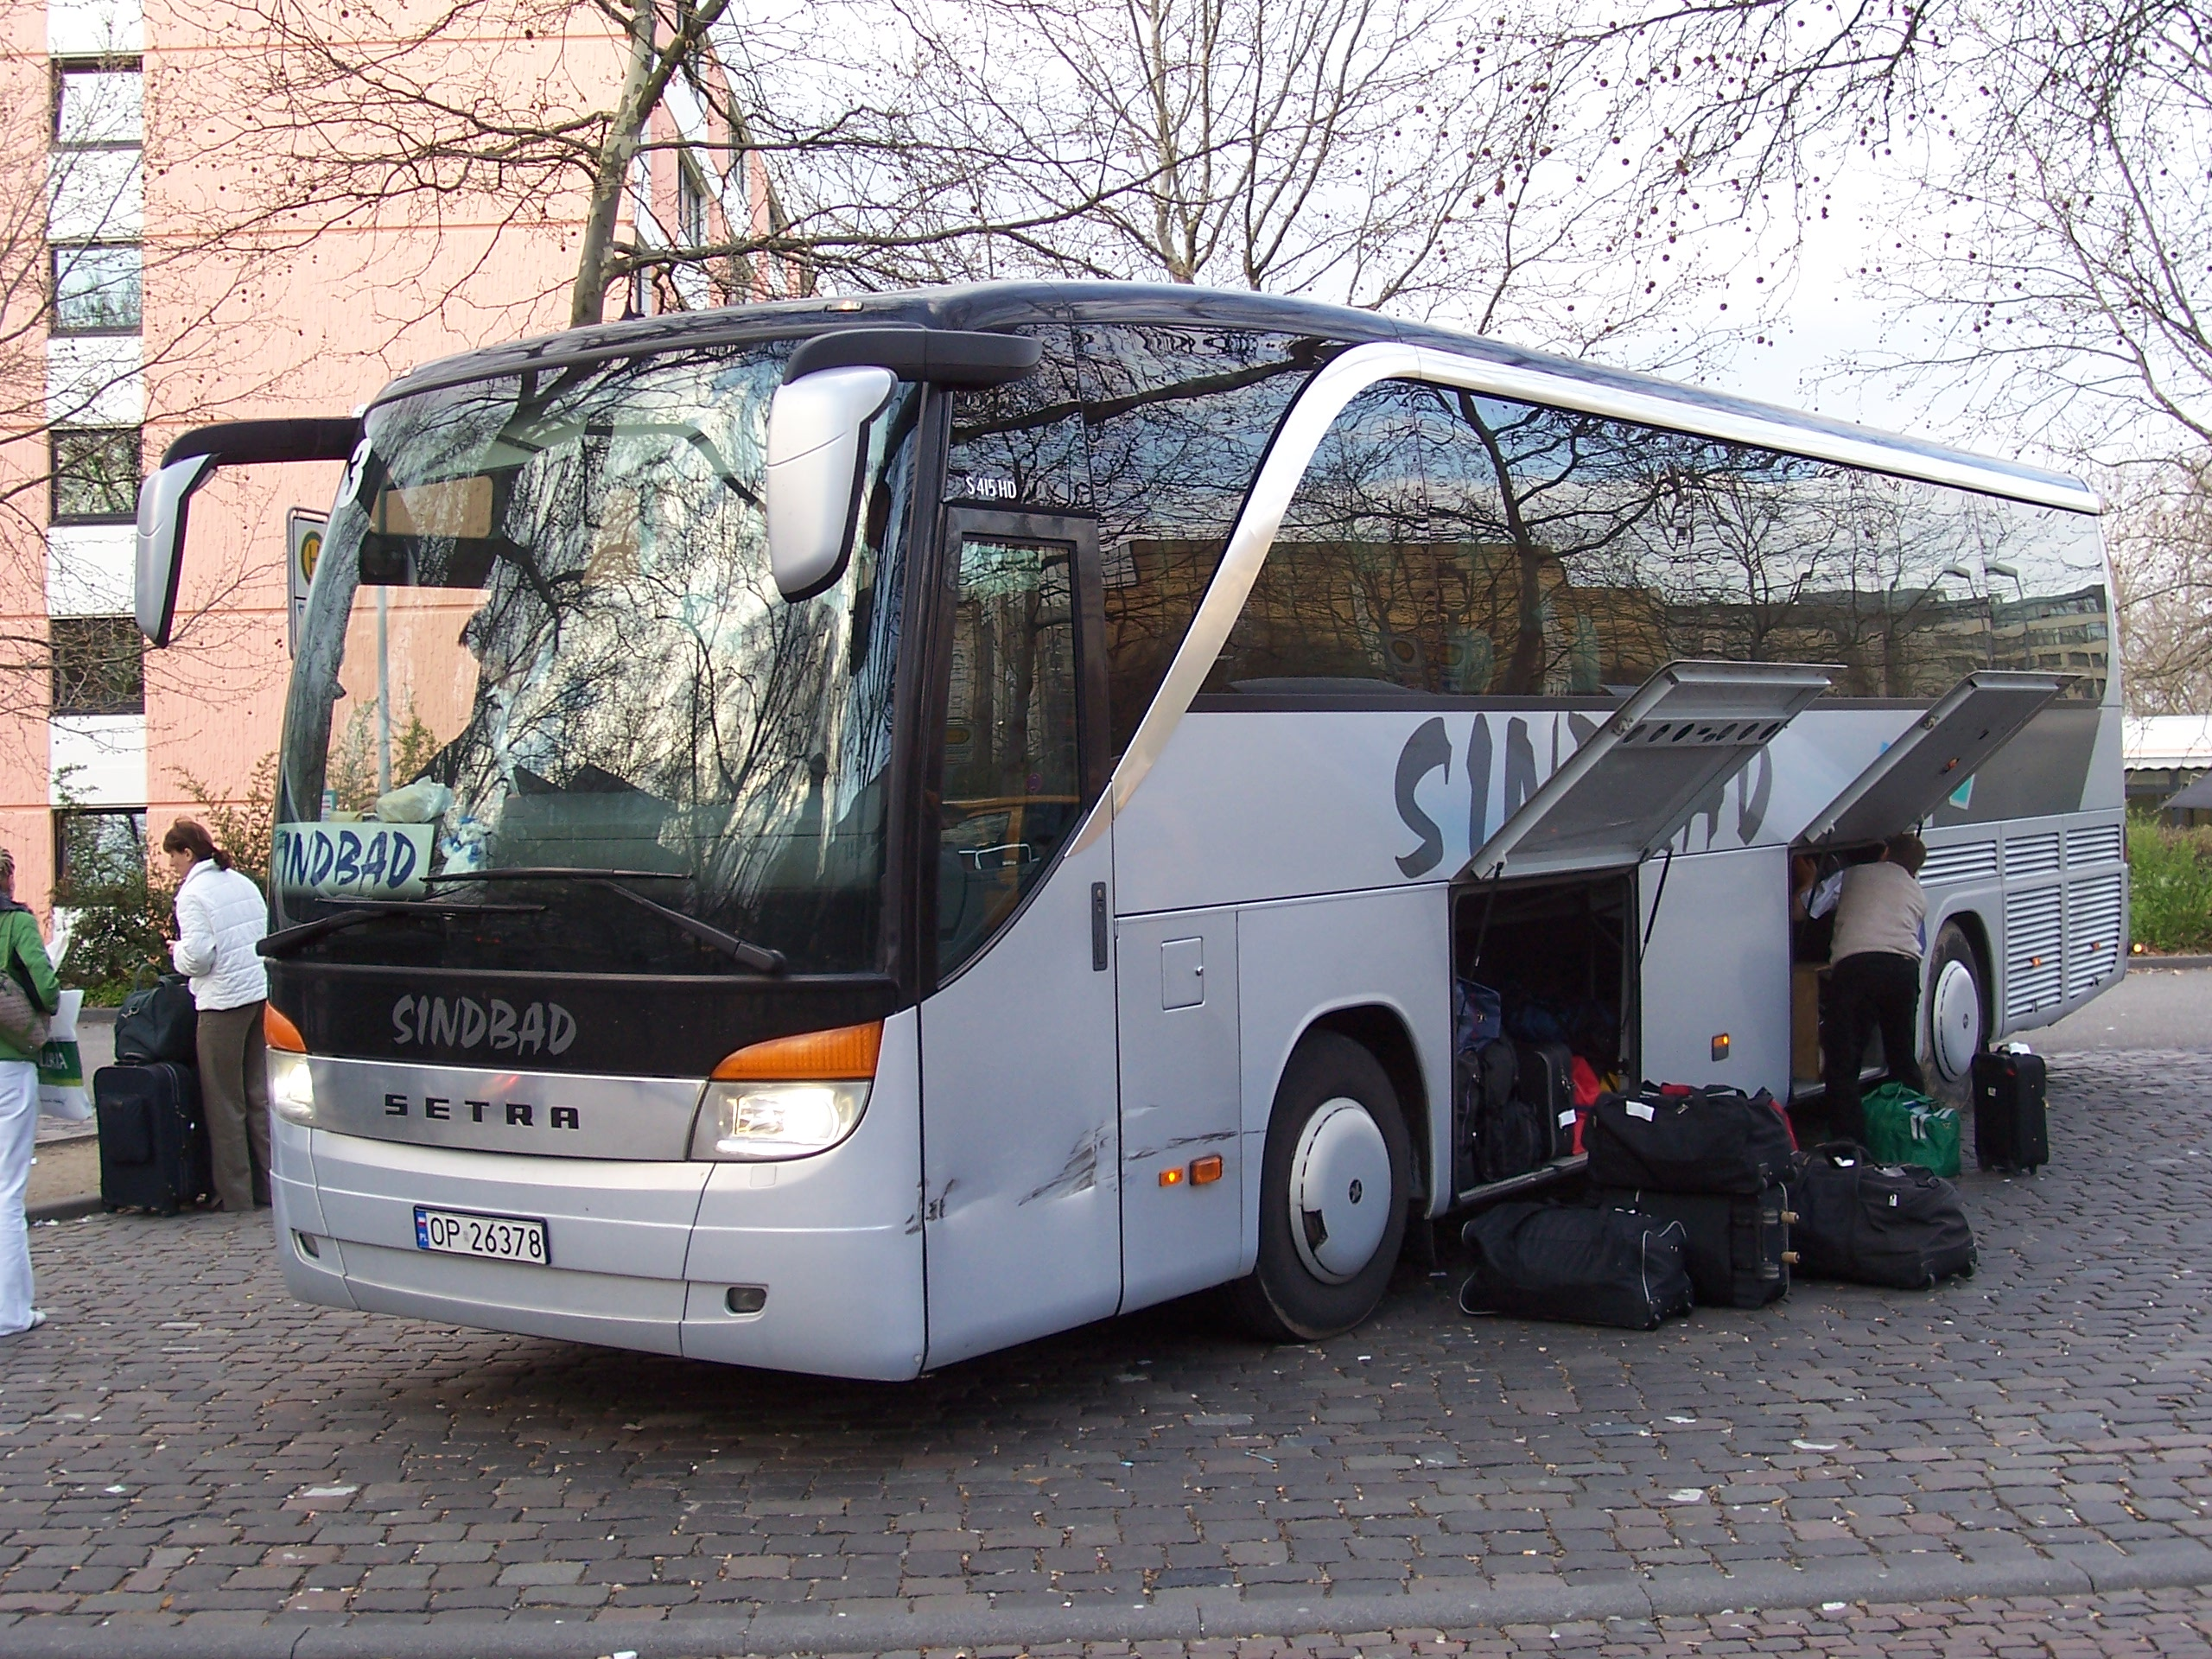 File:Setra S 415 HD Mannheim 100 4667.jpg - Wikimedia Commons